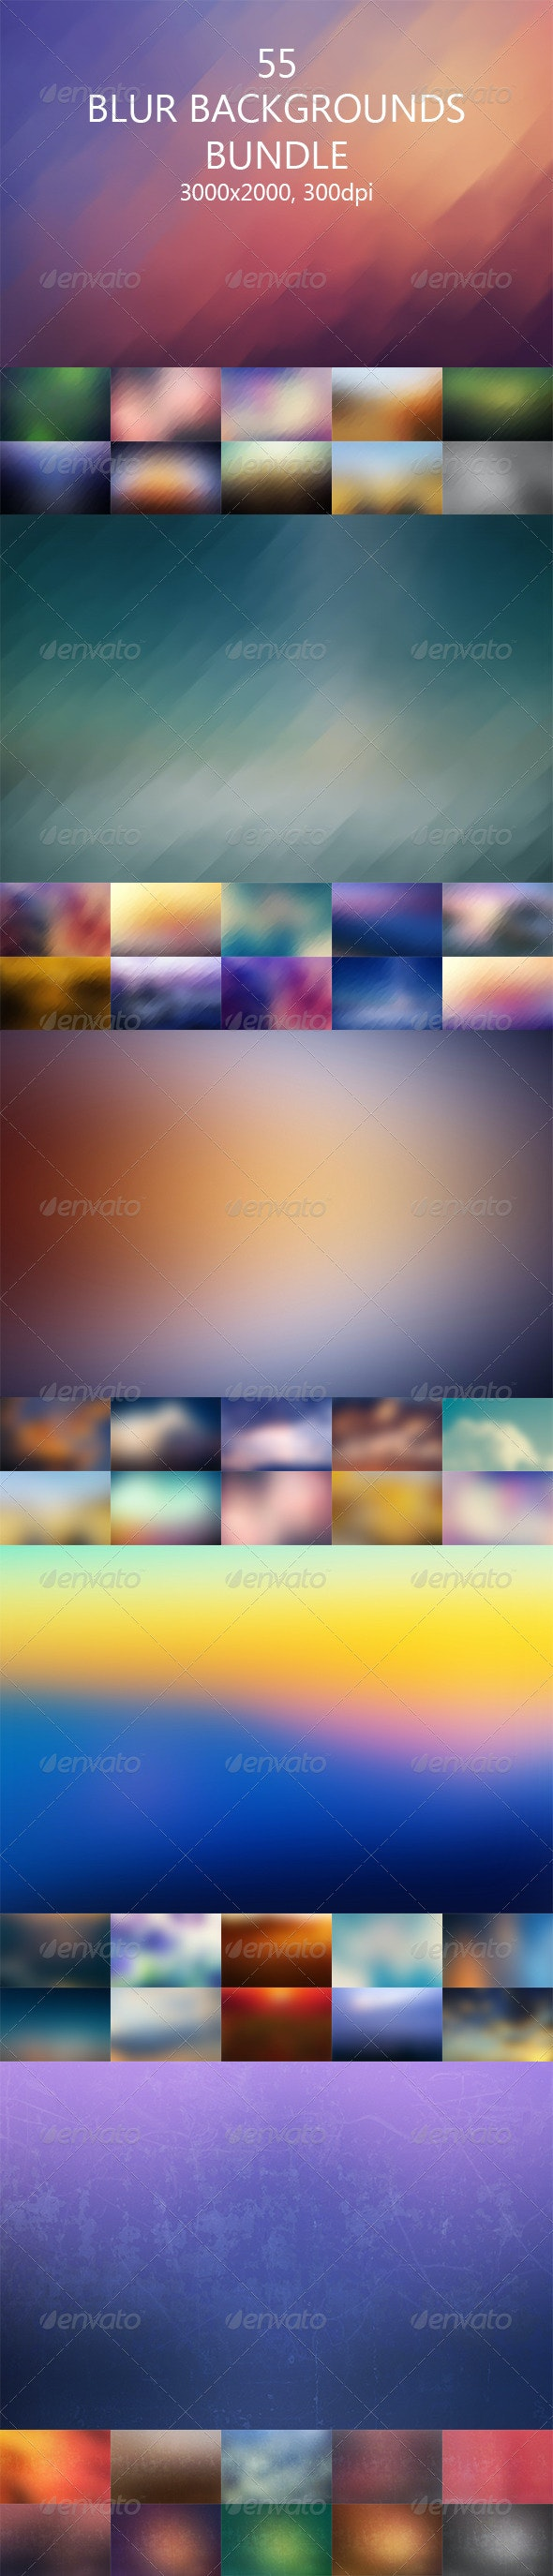 Blur Backgrounds Bundle - Abstract Backgrounds